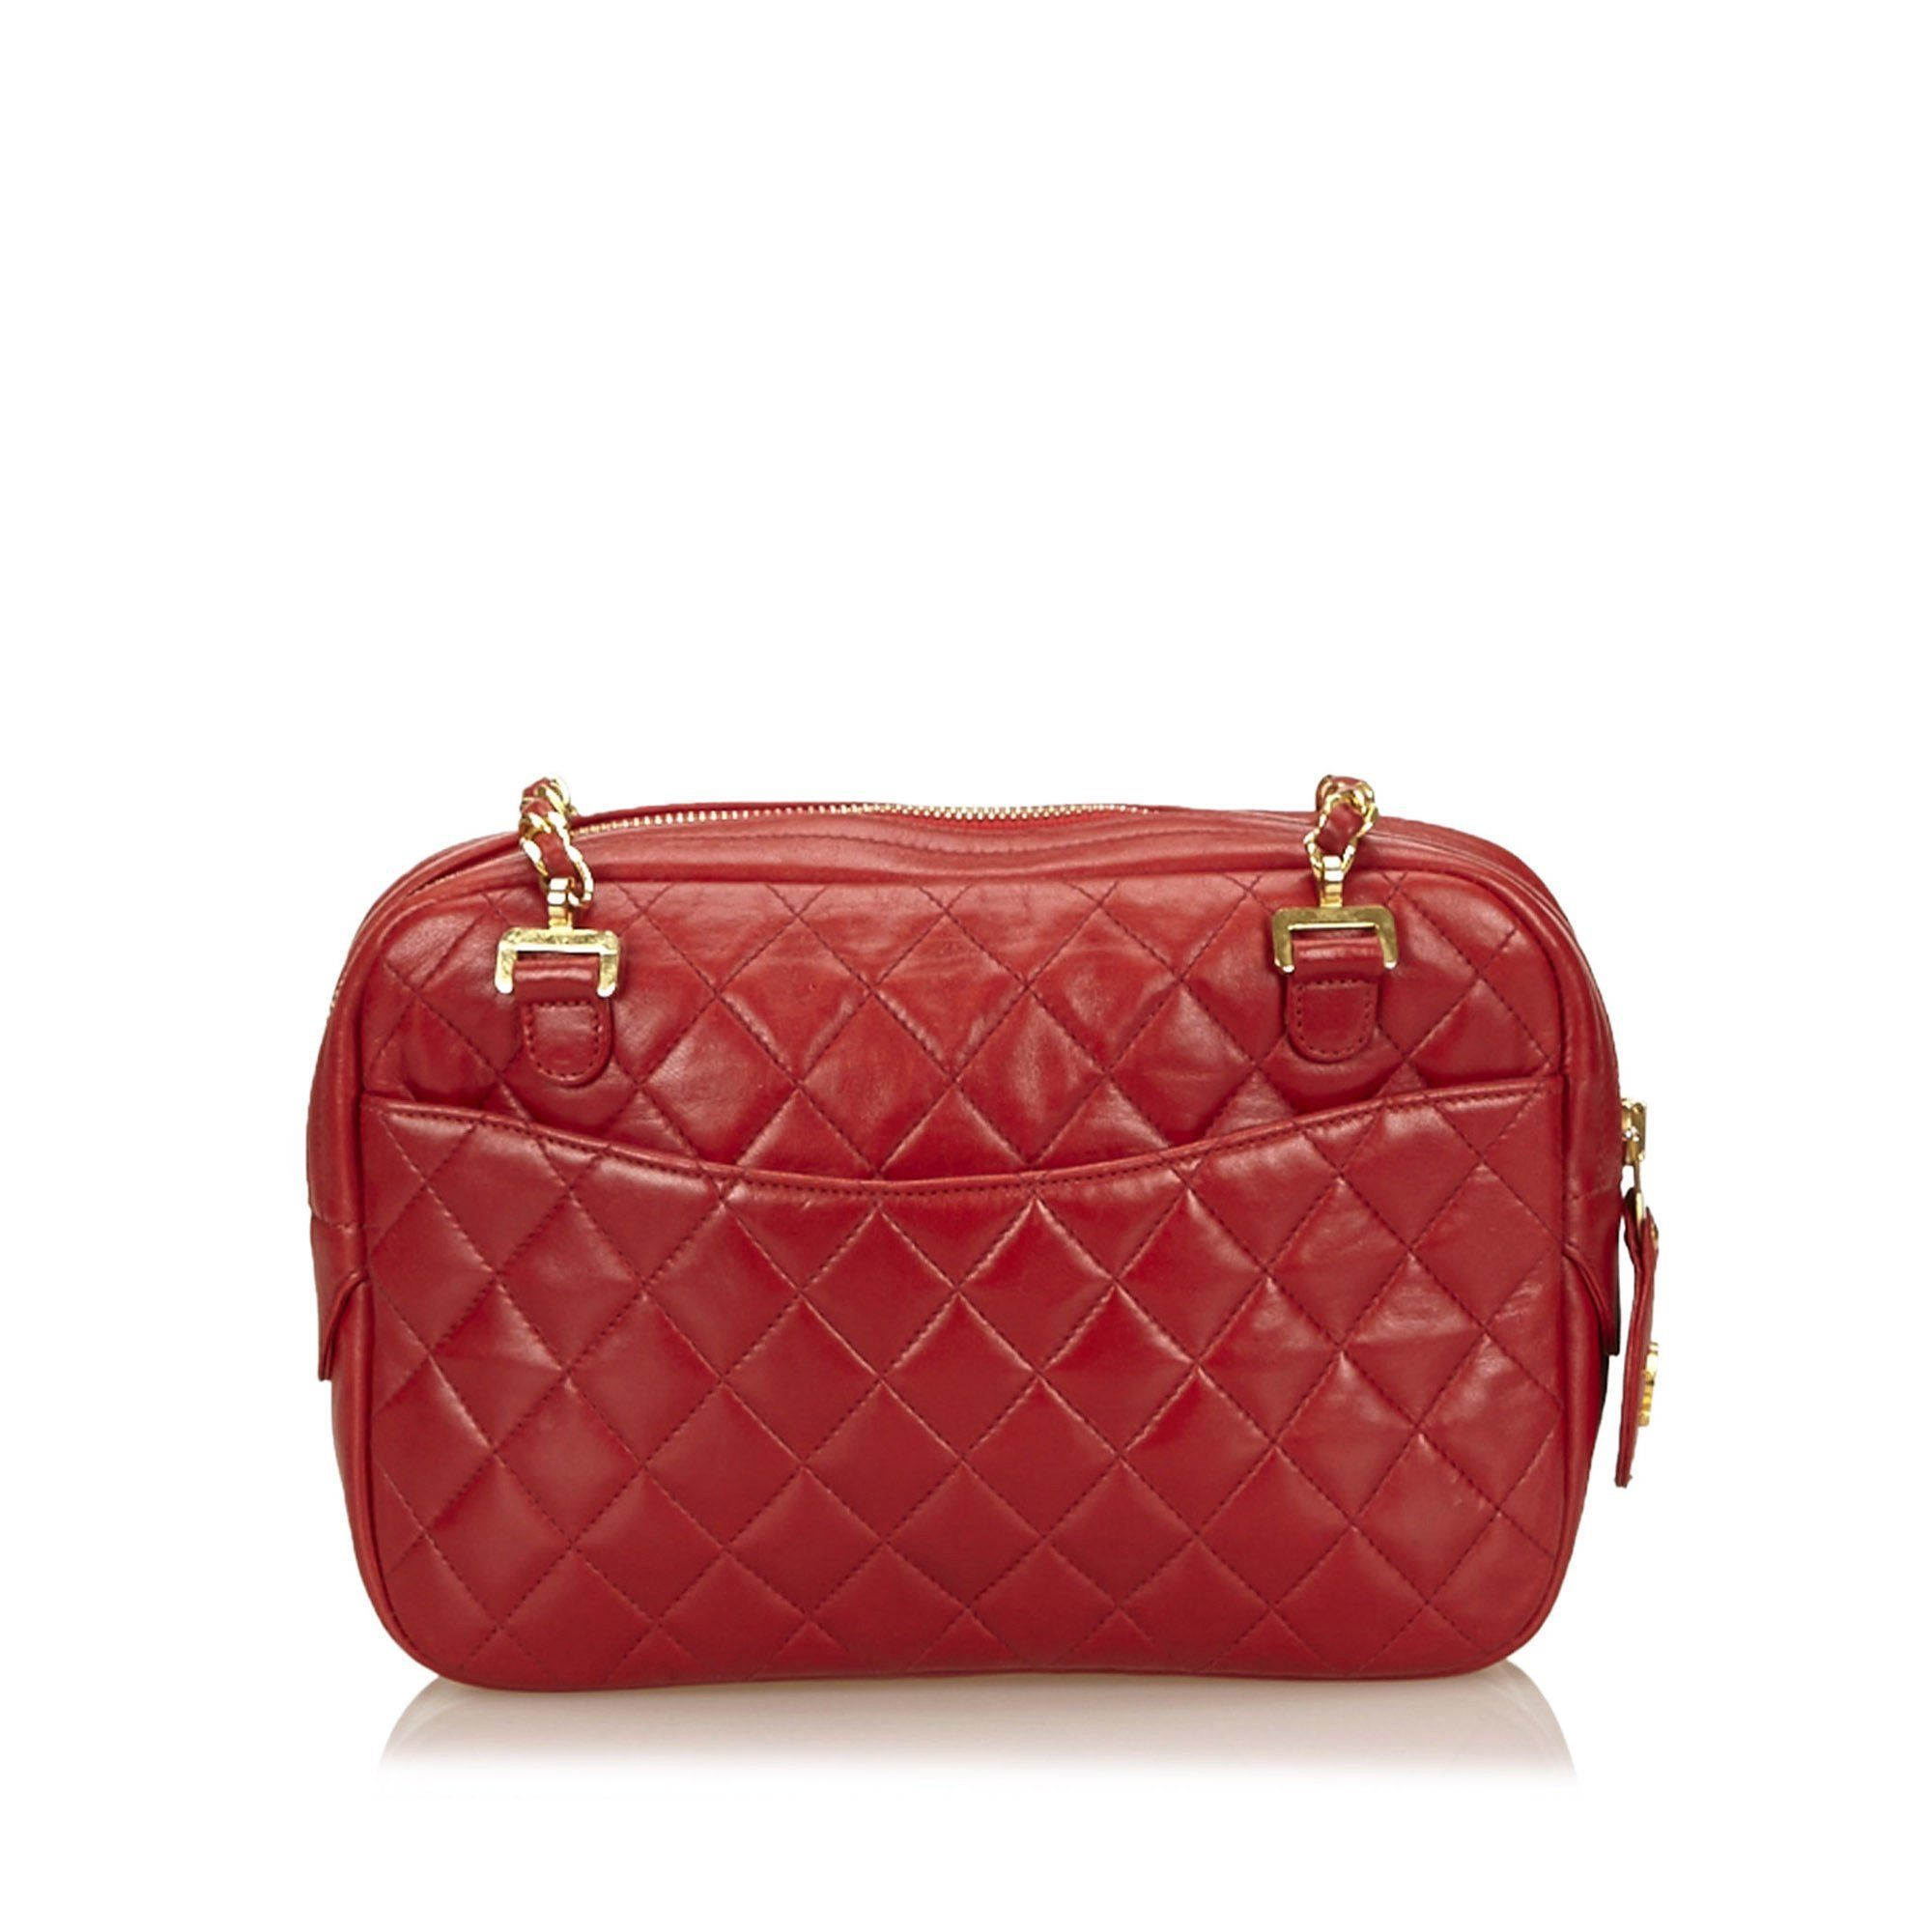 Vintage Quilted Lambskin Leather Shoulder Bag